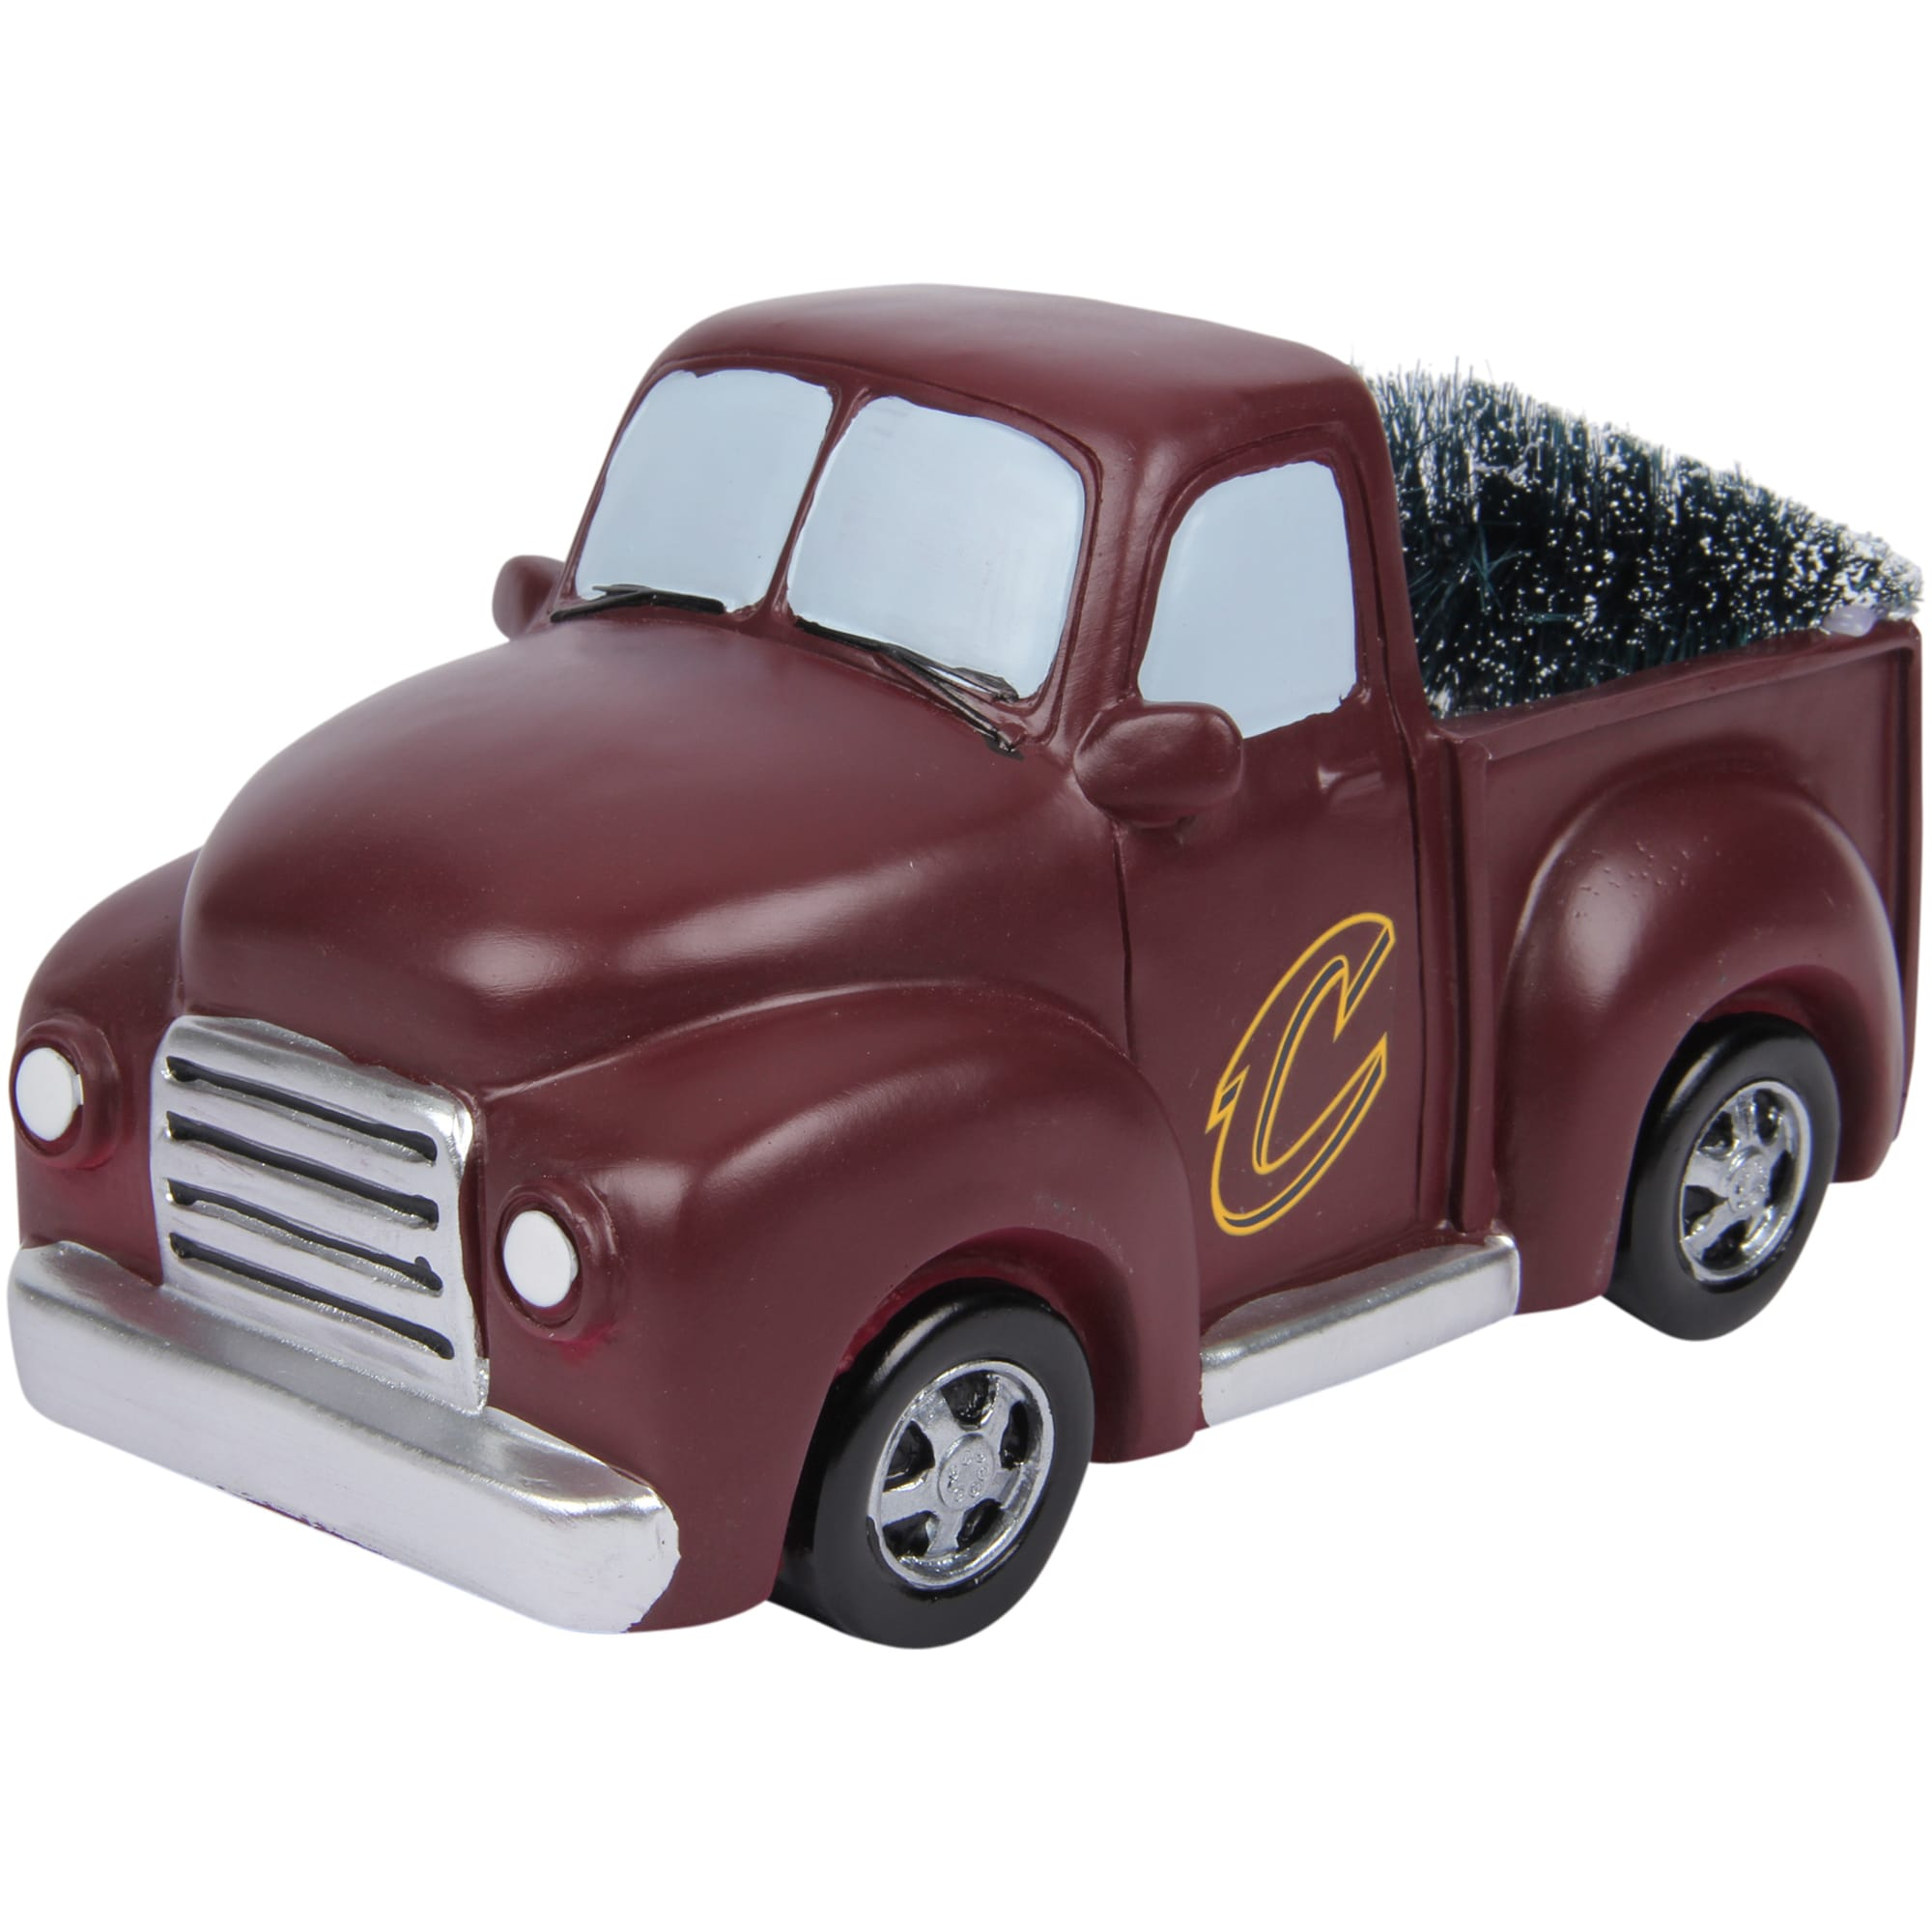 Cleveland Cavaliers Truck With Tree Table Top Ornament